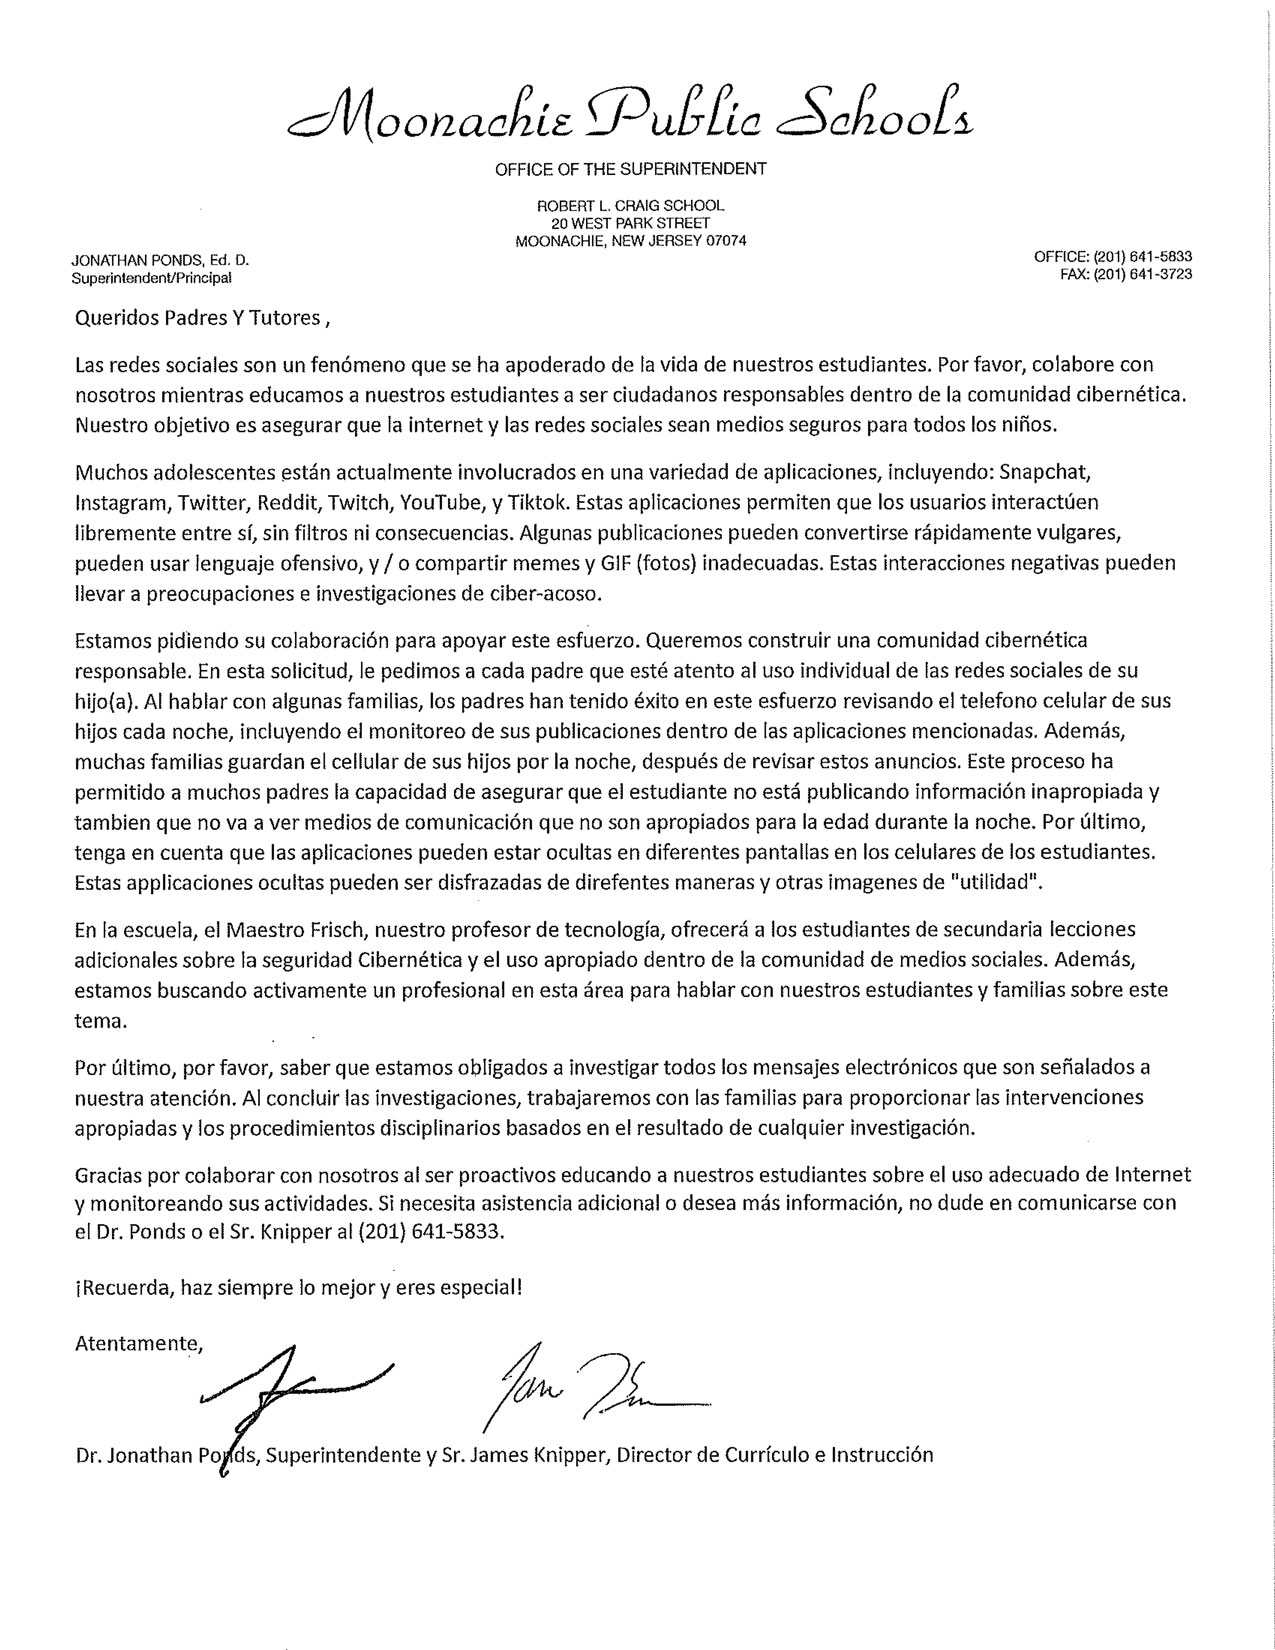 Seguridad en Internet Carta